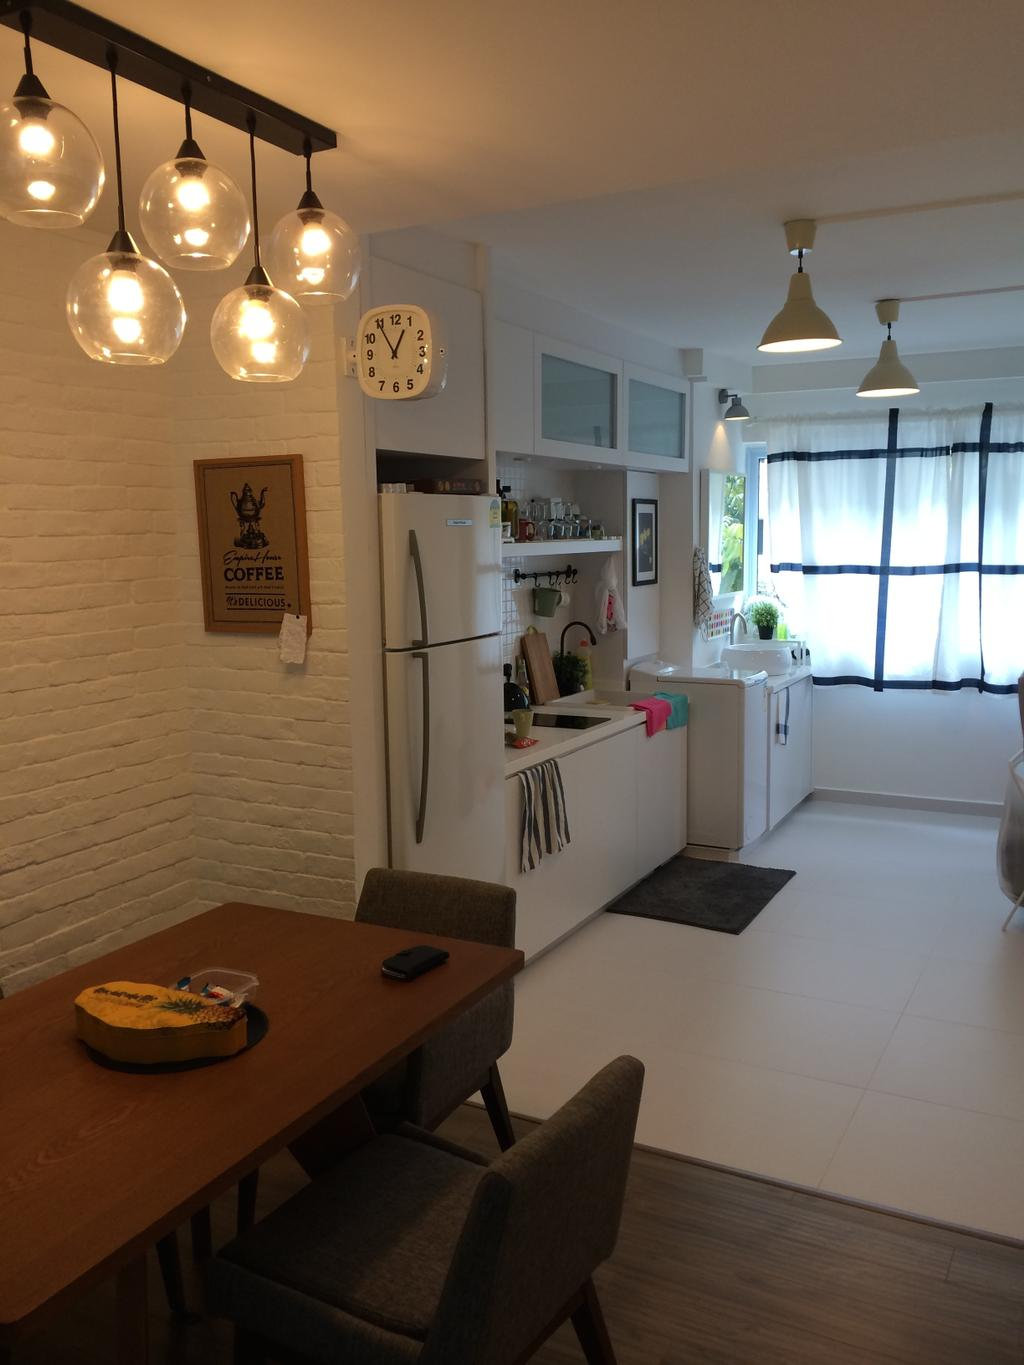 Scandinavian, HDB, Dining Room, Serangoon, Interior Designer, Juz Interior, Hdb, White, Tile, Brown, Hanging Lights, Kitchen, Lamp, Wood, Laminate, Space, Storage, Cabinet, Couch, Furniture